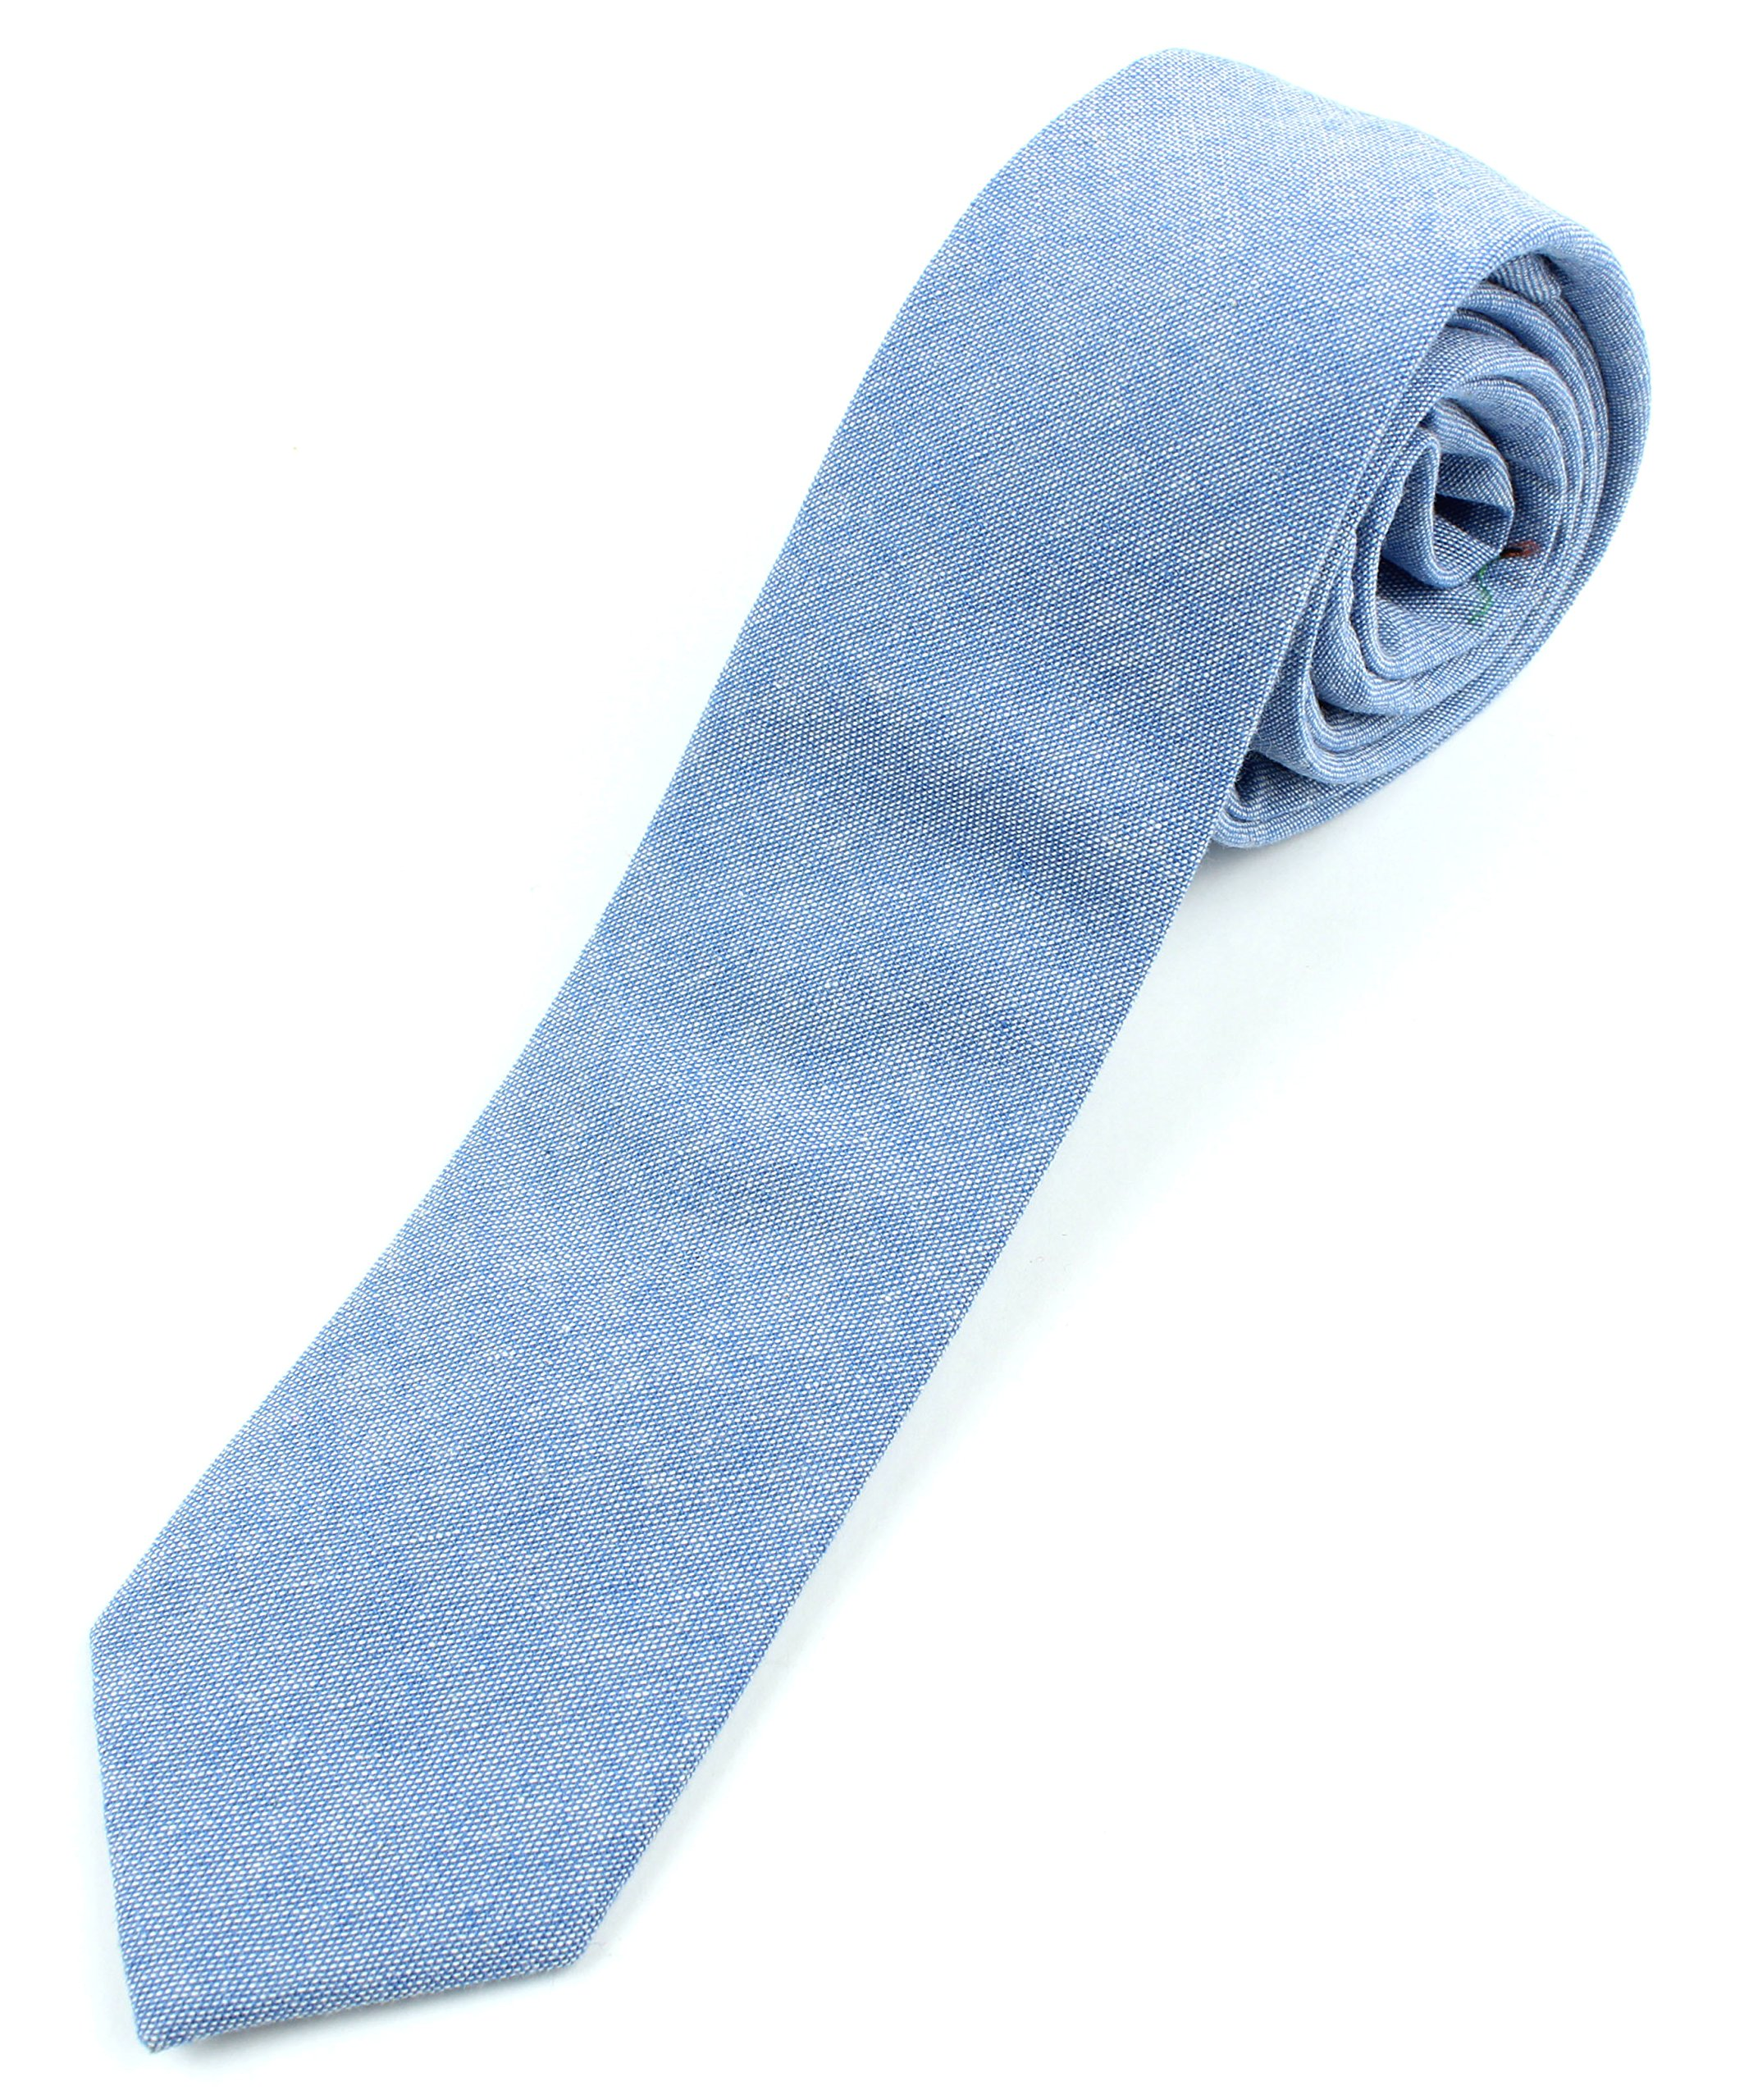 Men's Chambray Cotton Skinny Necktie Tie - Light Blue by Proper Materials